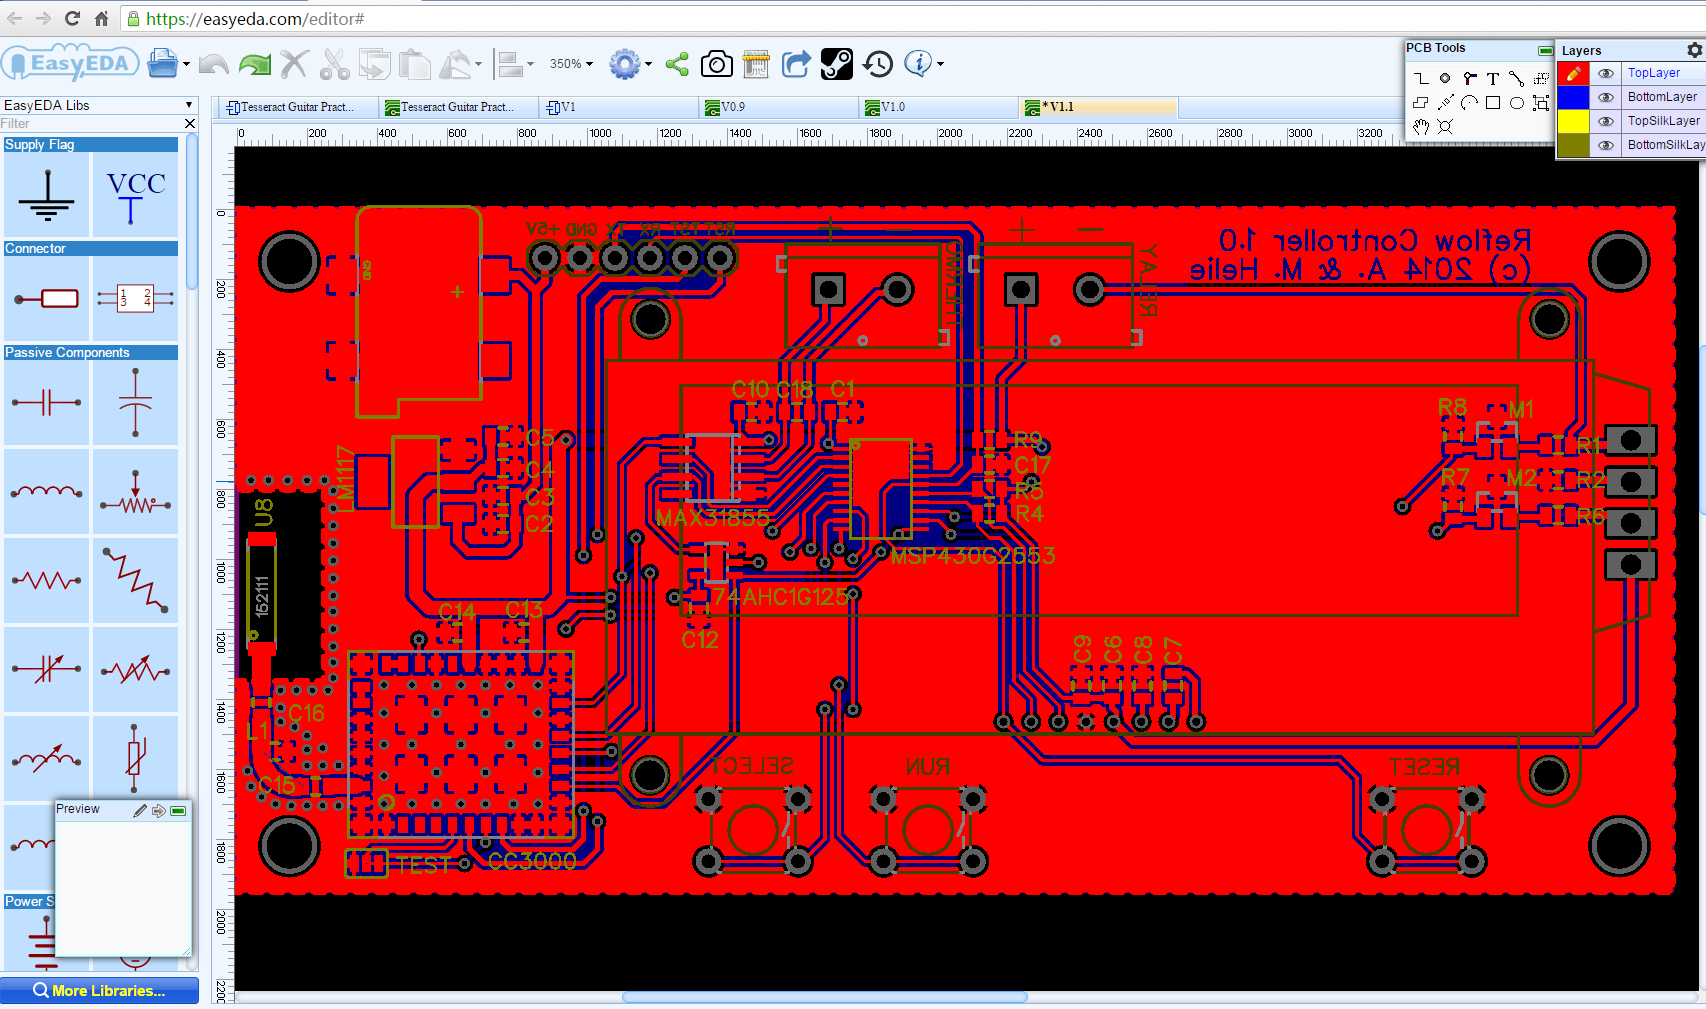 Wiring Diagram Software Open Source 220v Home Wiring Diagram